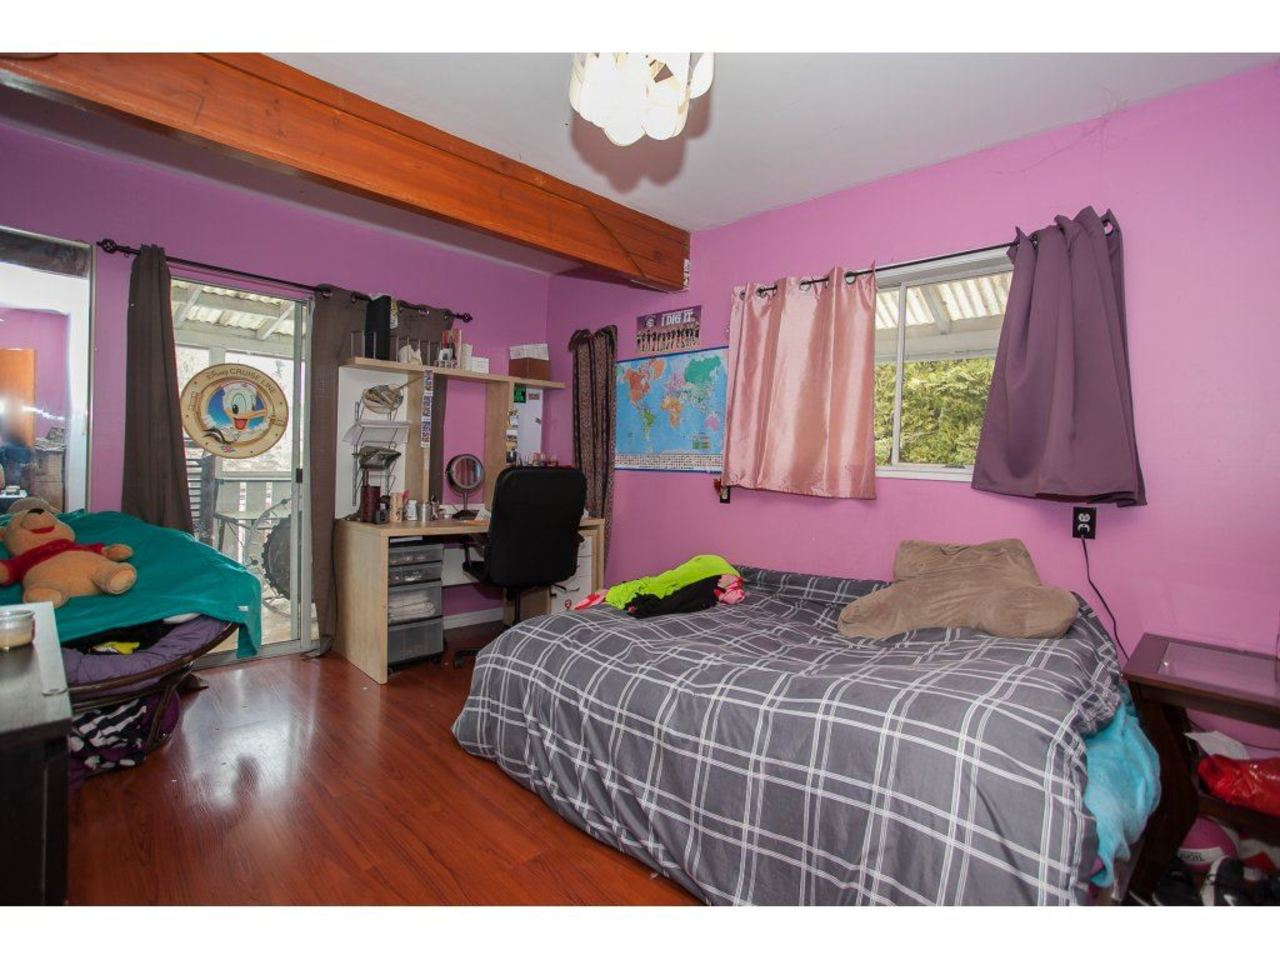 Bedroom -Listed by Solon REM, Top Langley & Fraser Valley Realtor  at 19943 Brydon, Langley City, Langley